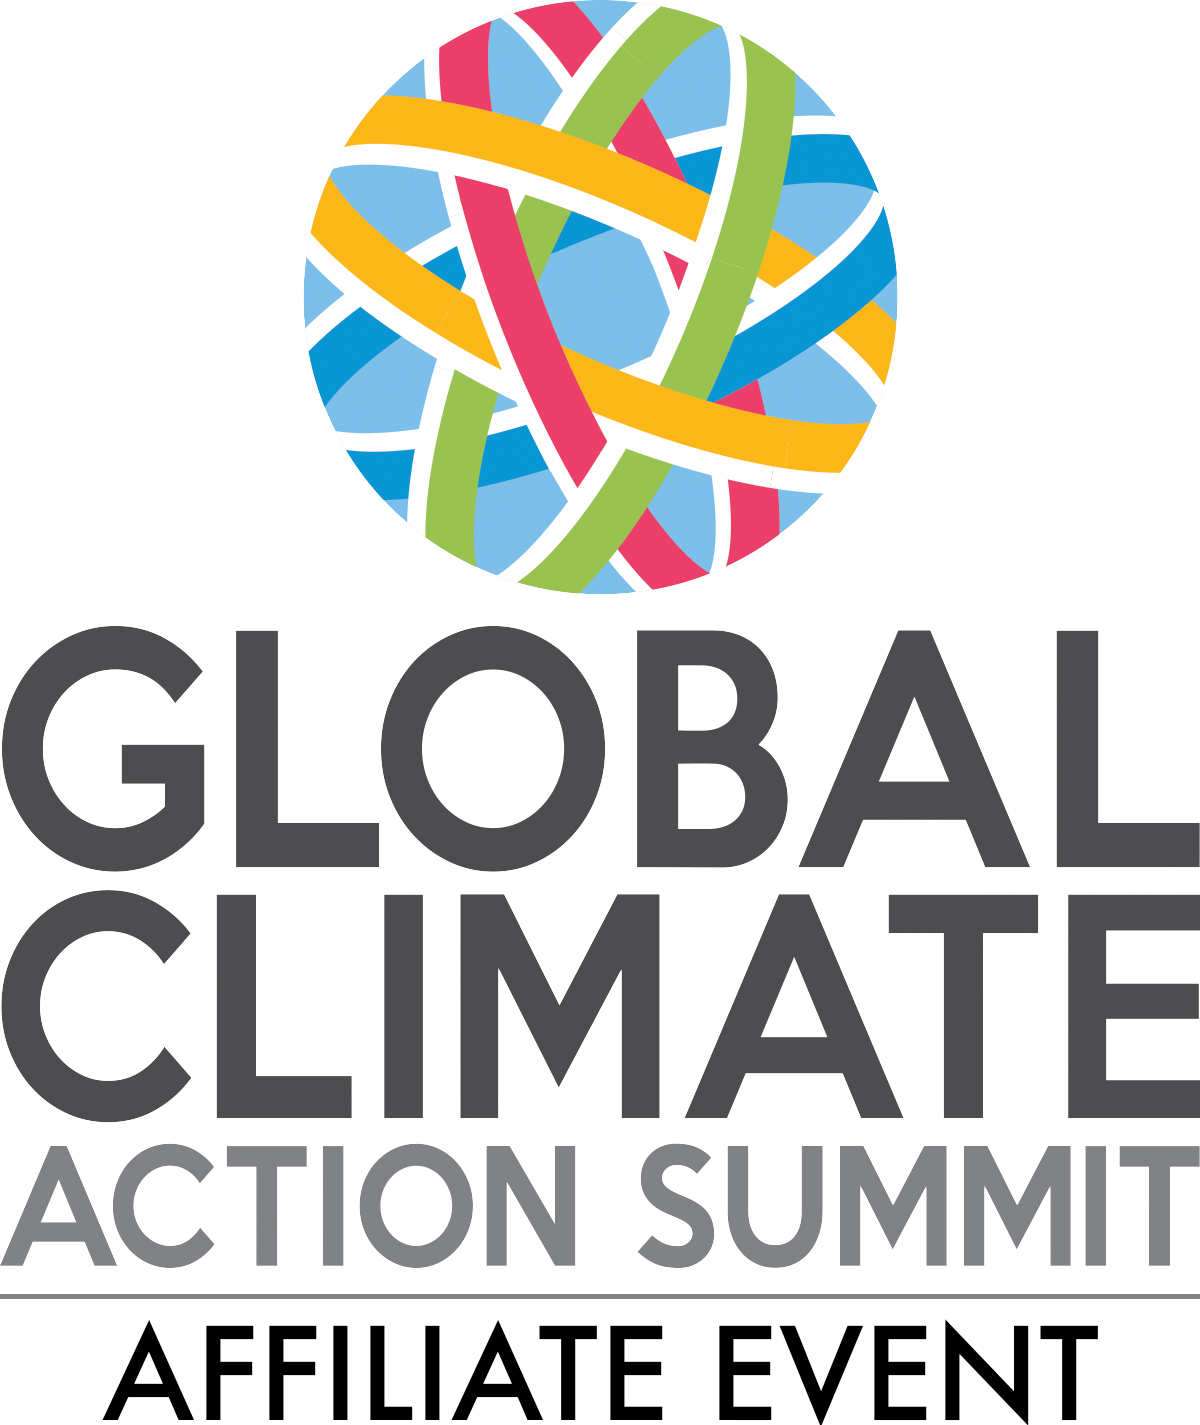 Global Climate Action Summit Affiliate Event | Symposium presented by UC Davis and California Department of Conservation